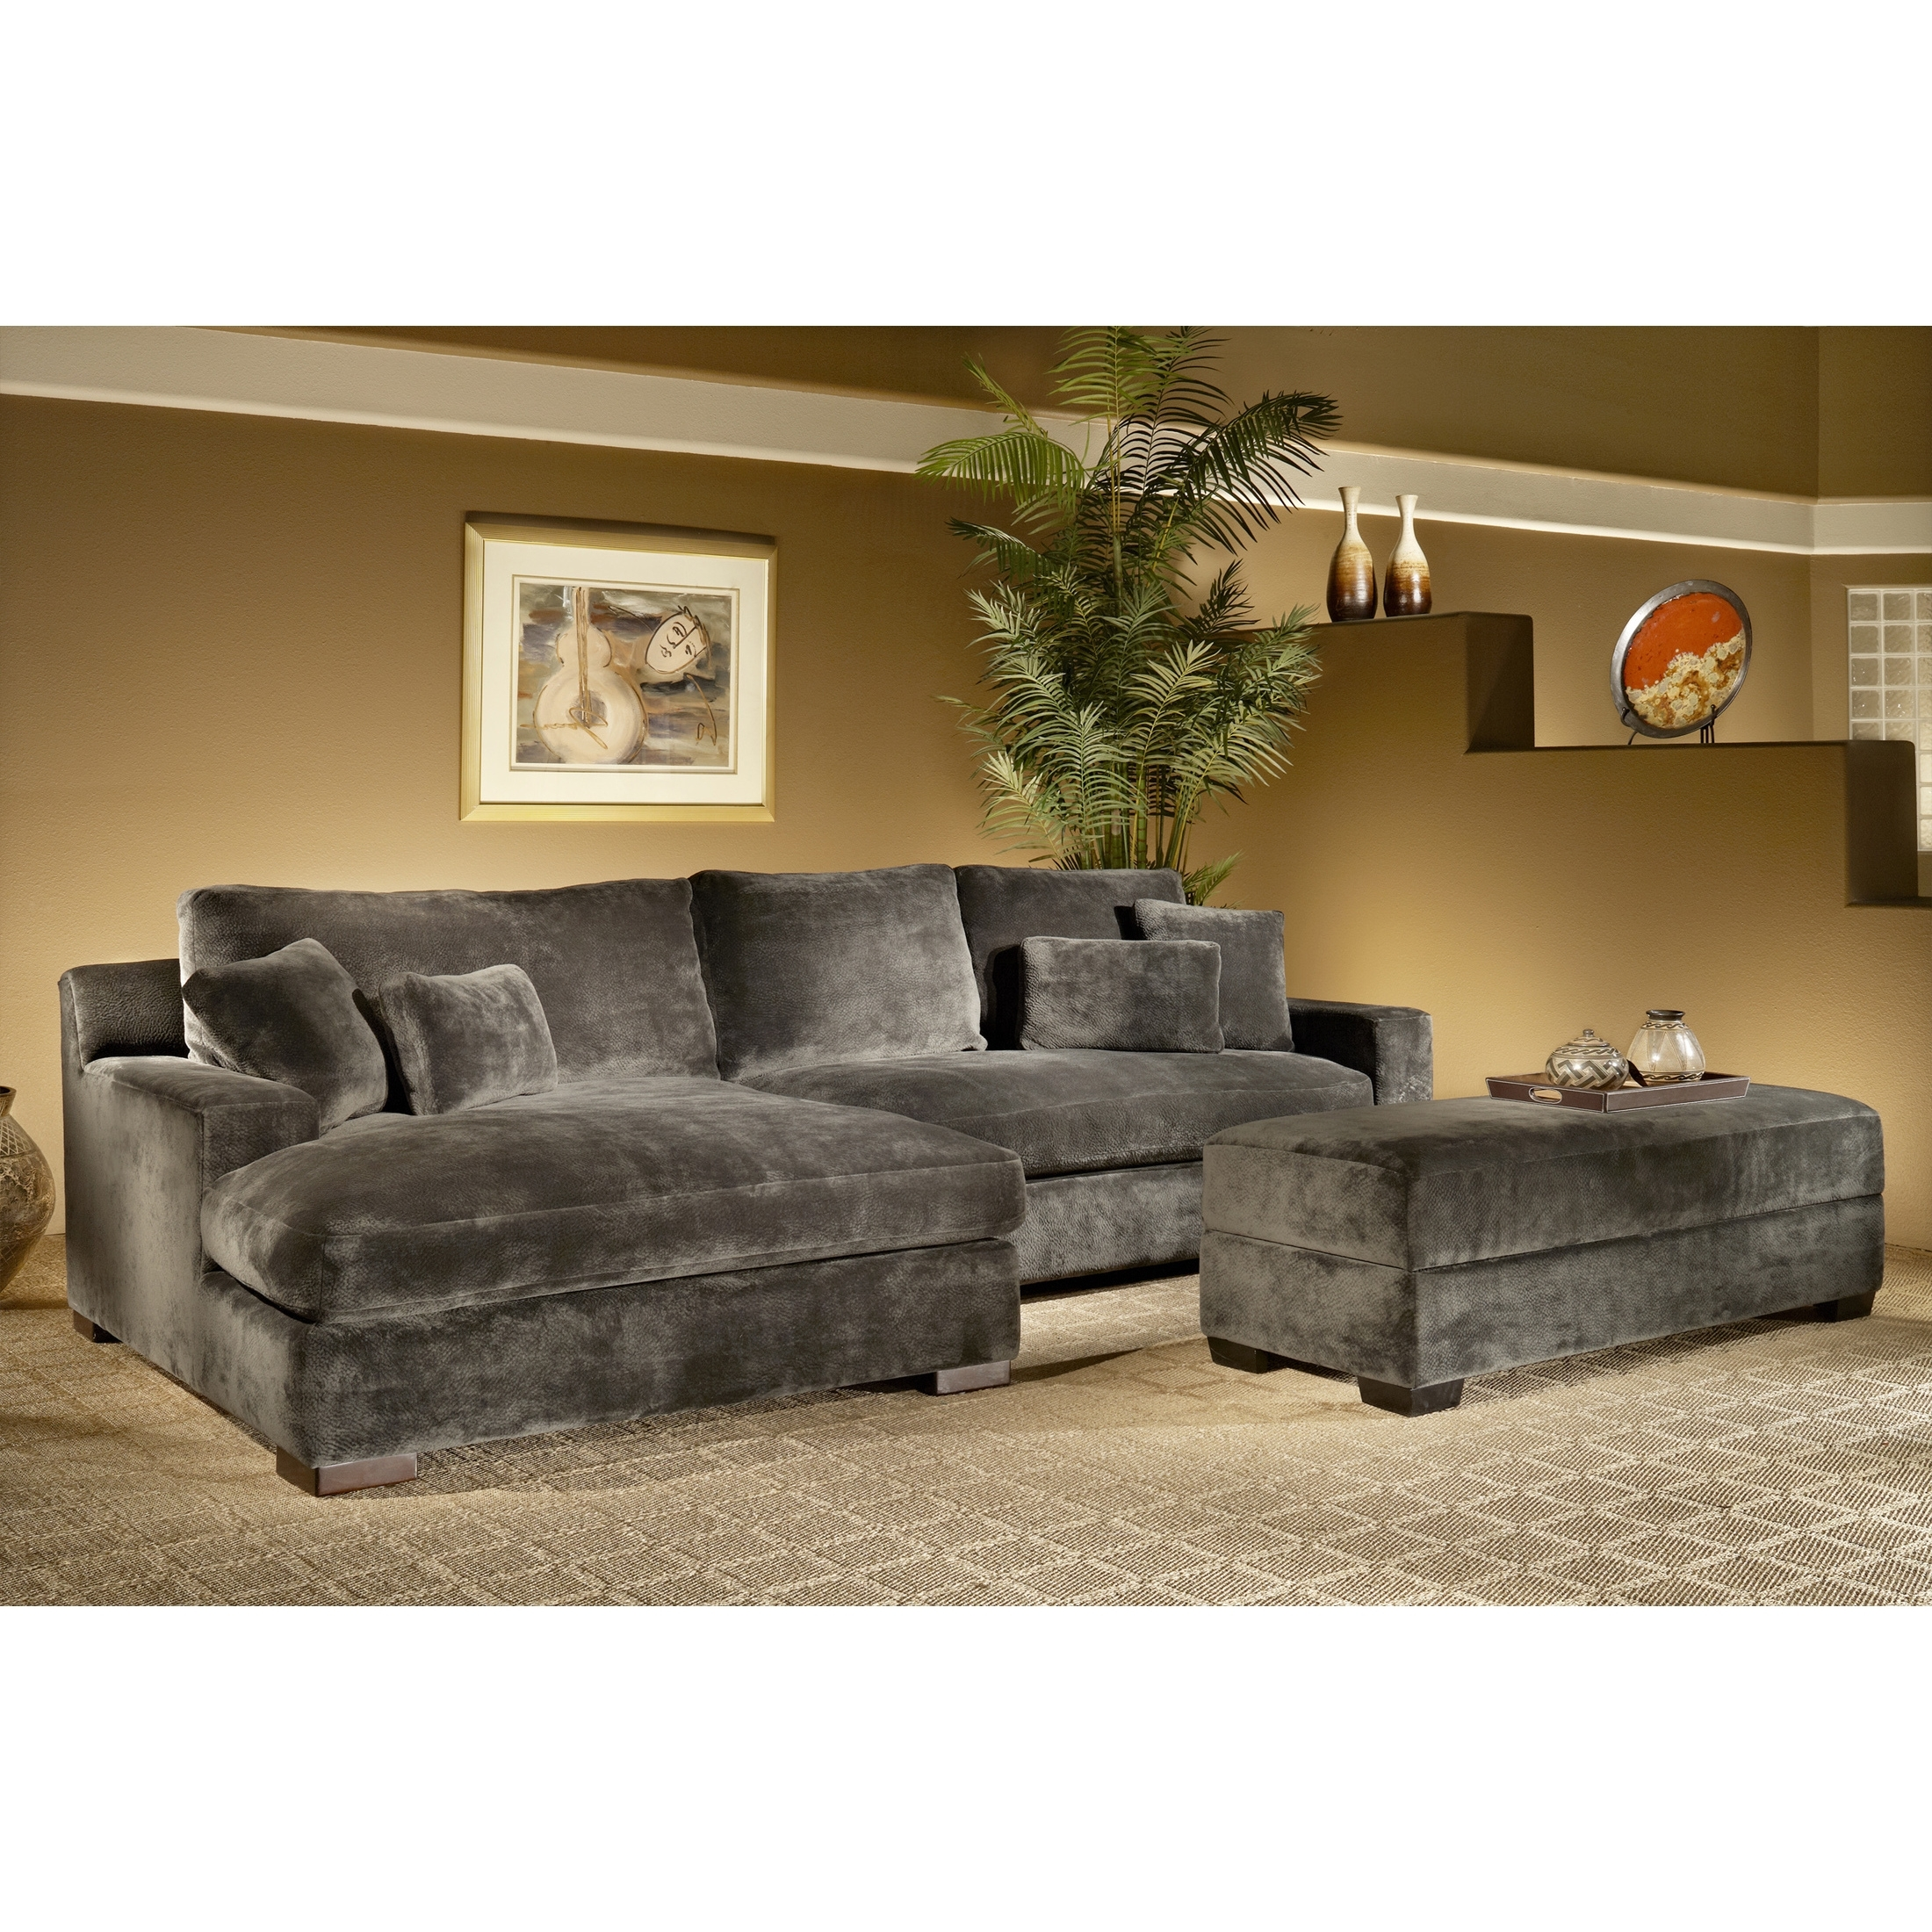 The Casual Contemporary Doris Two Piece Chaise Sectional Is Throughout Latest 2 Piece Chaise Sectionals (View 14 of 15)